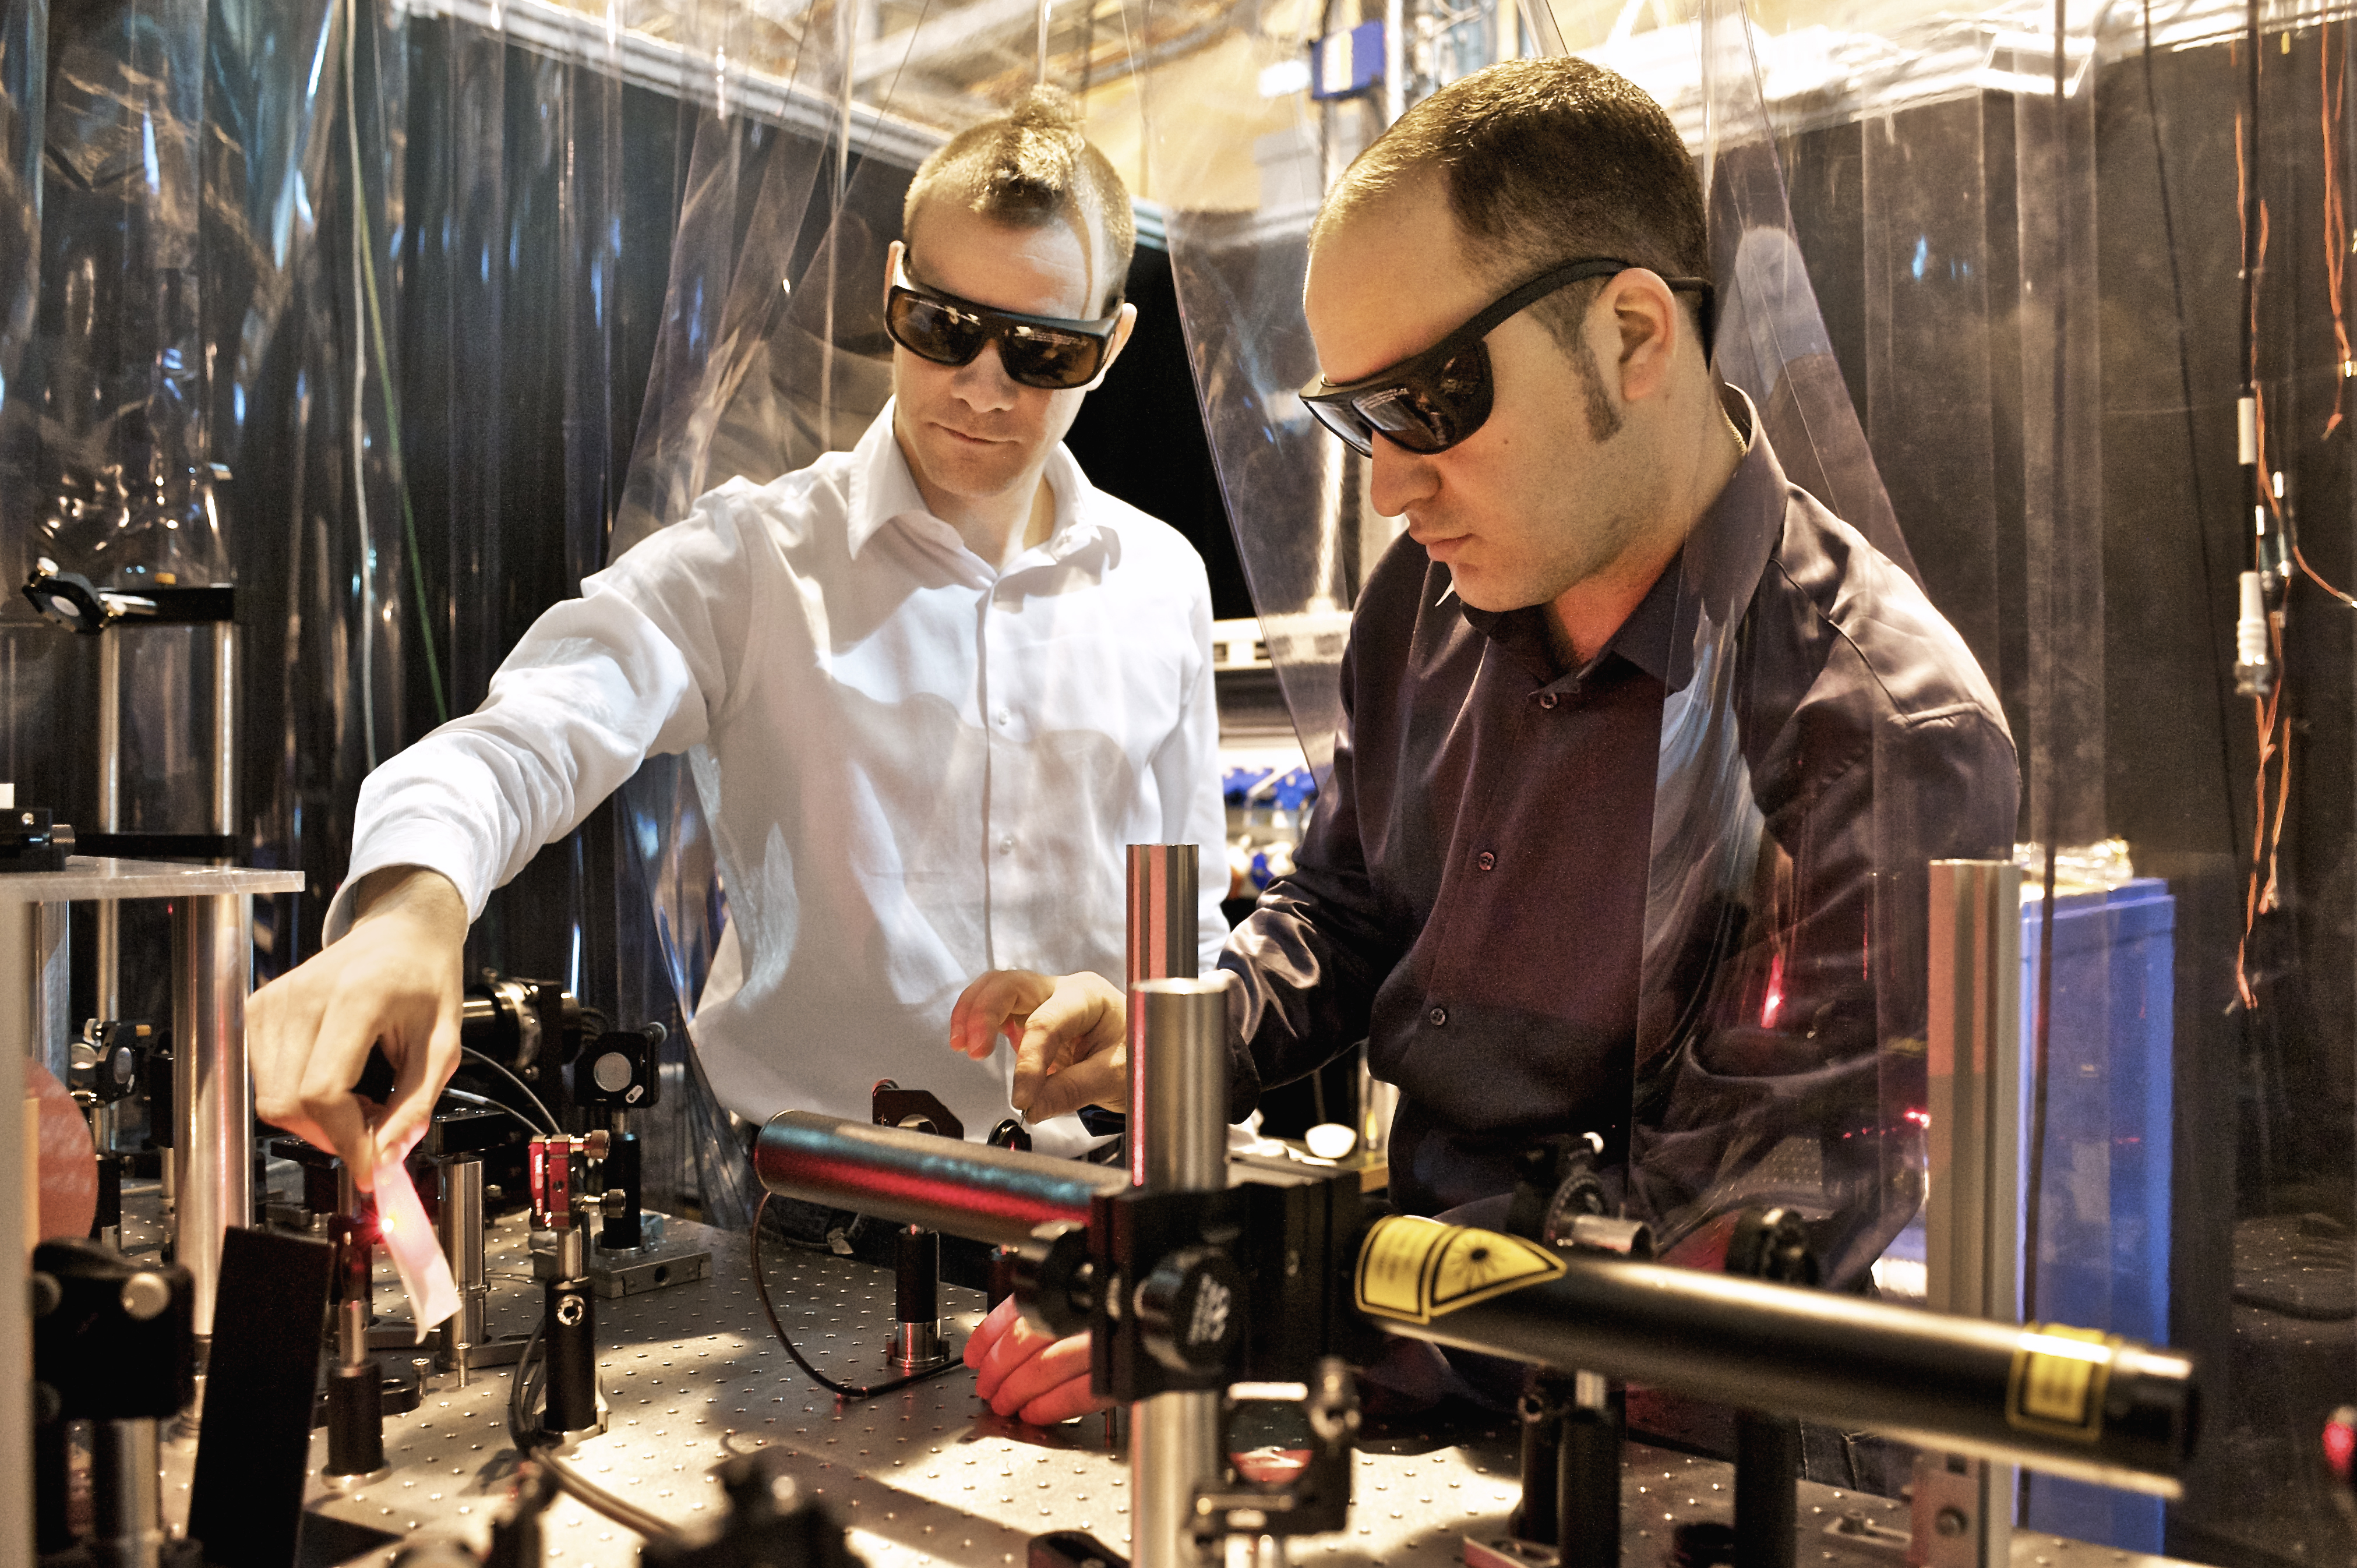 PSI scientists Loïc Le Guyader (left) and Souliman El Moussaoui adjusting the laser that was used to heat the magnetic sample. (Paul Scherrer Institute/M. Fischer)